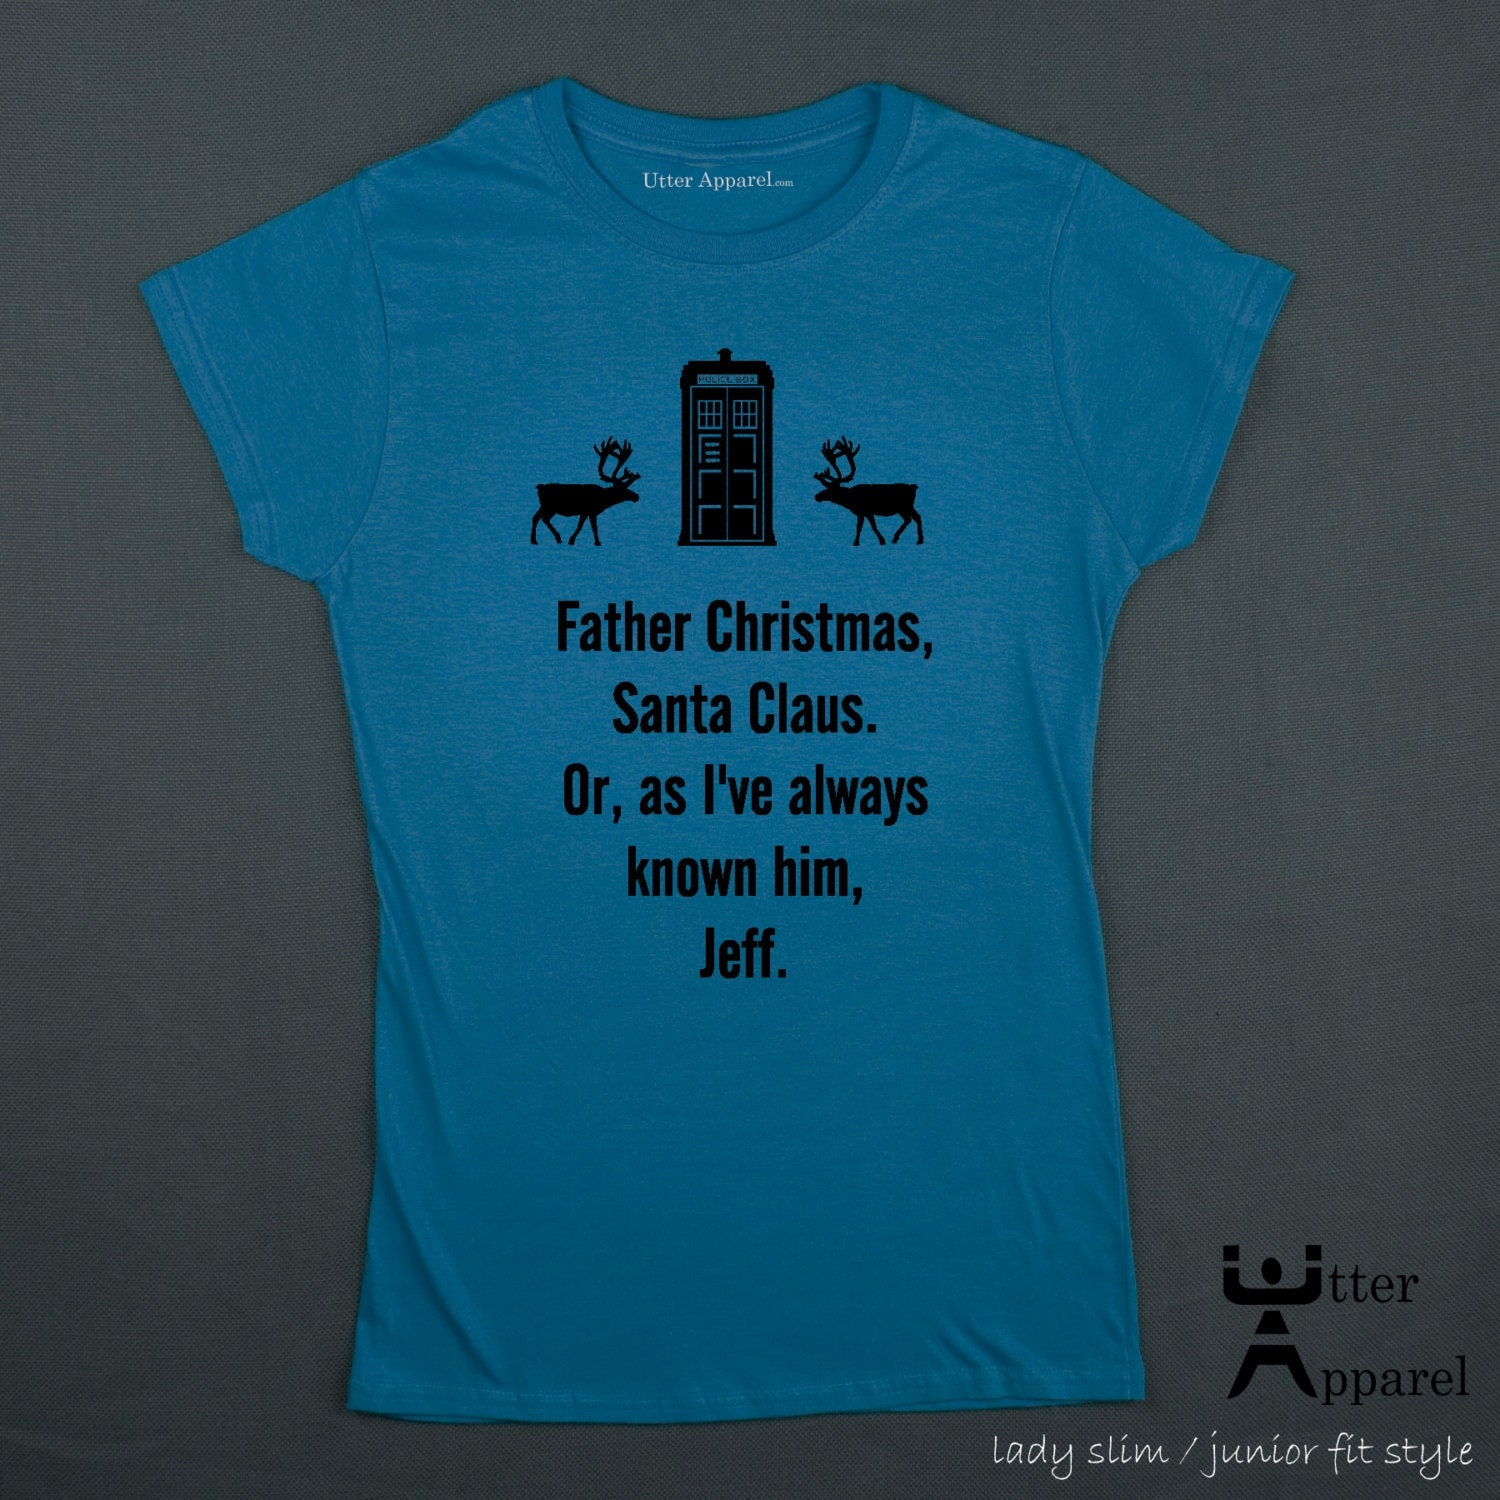 Dr Who Christmas jumper t-shirt. Also an ideal Christmas